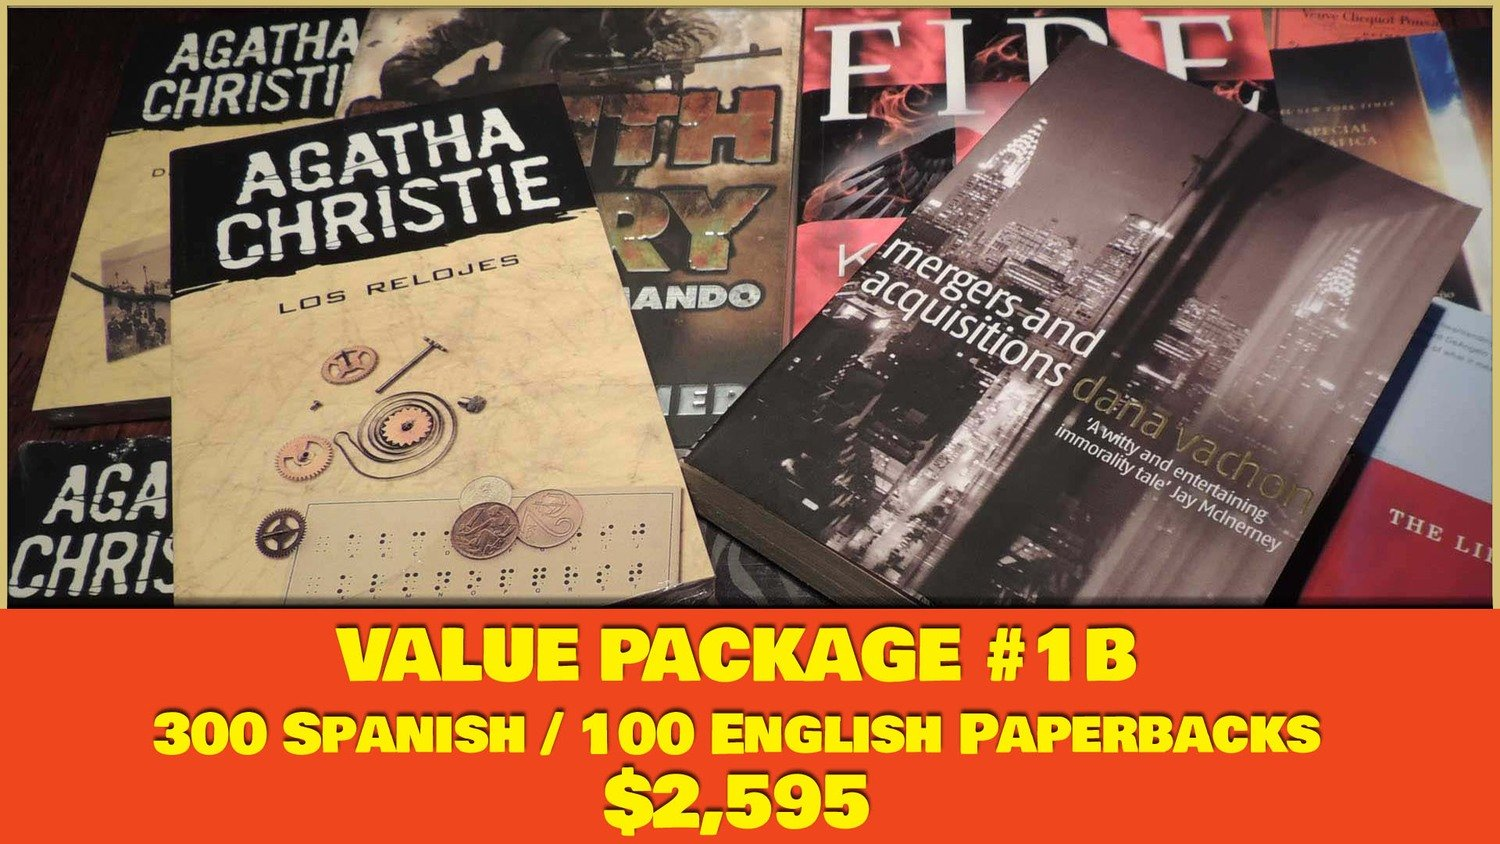 VALUE PACKAGE #1B